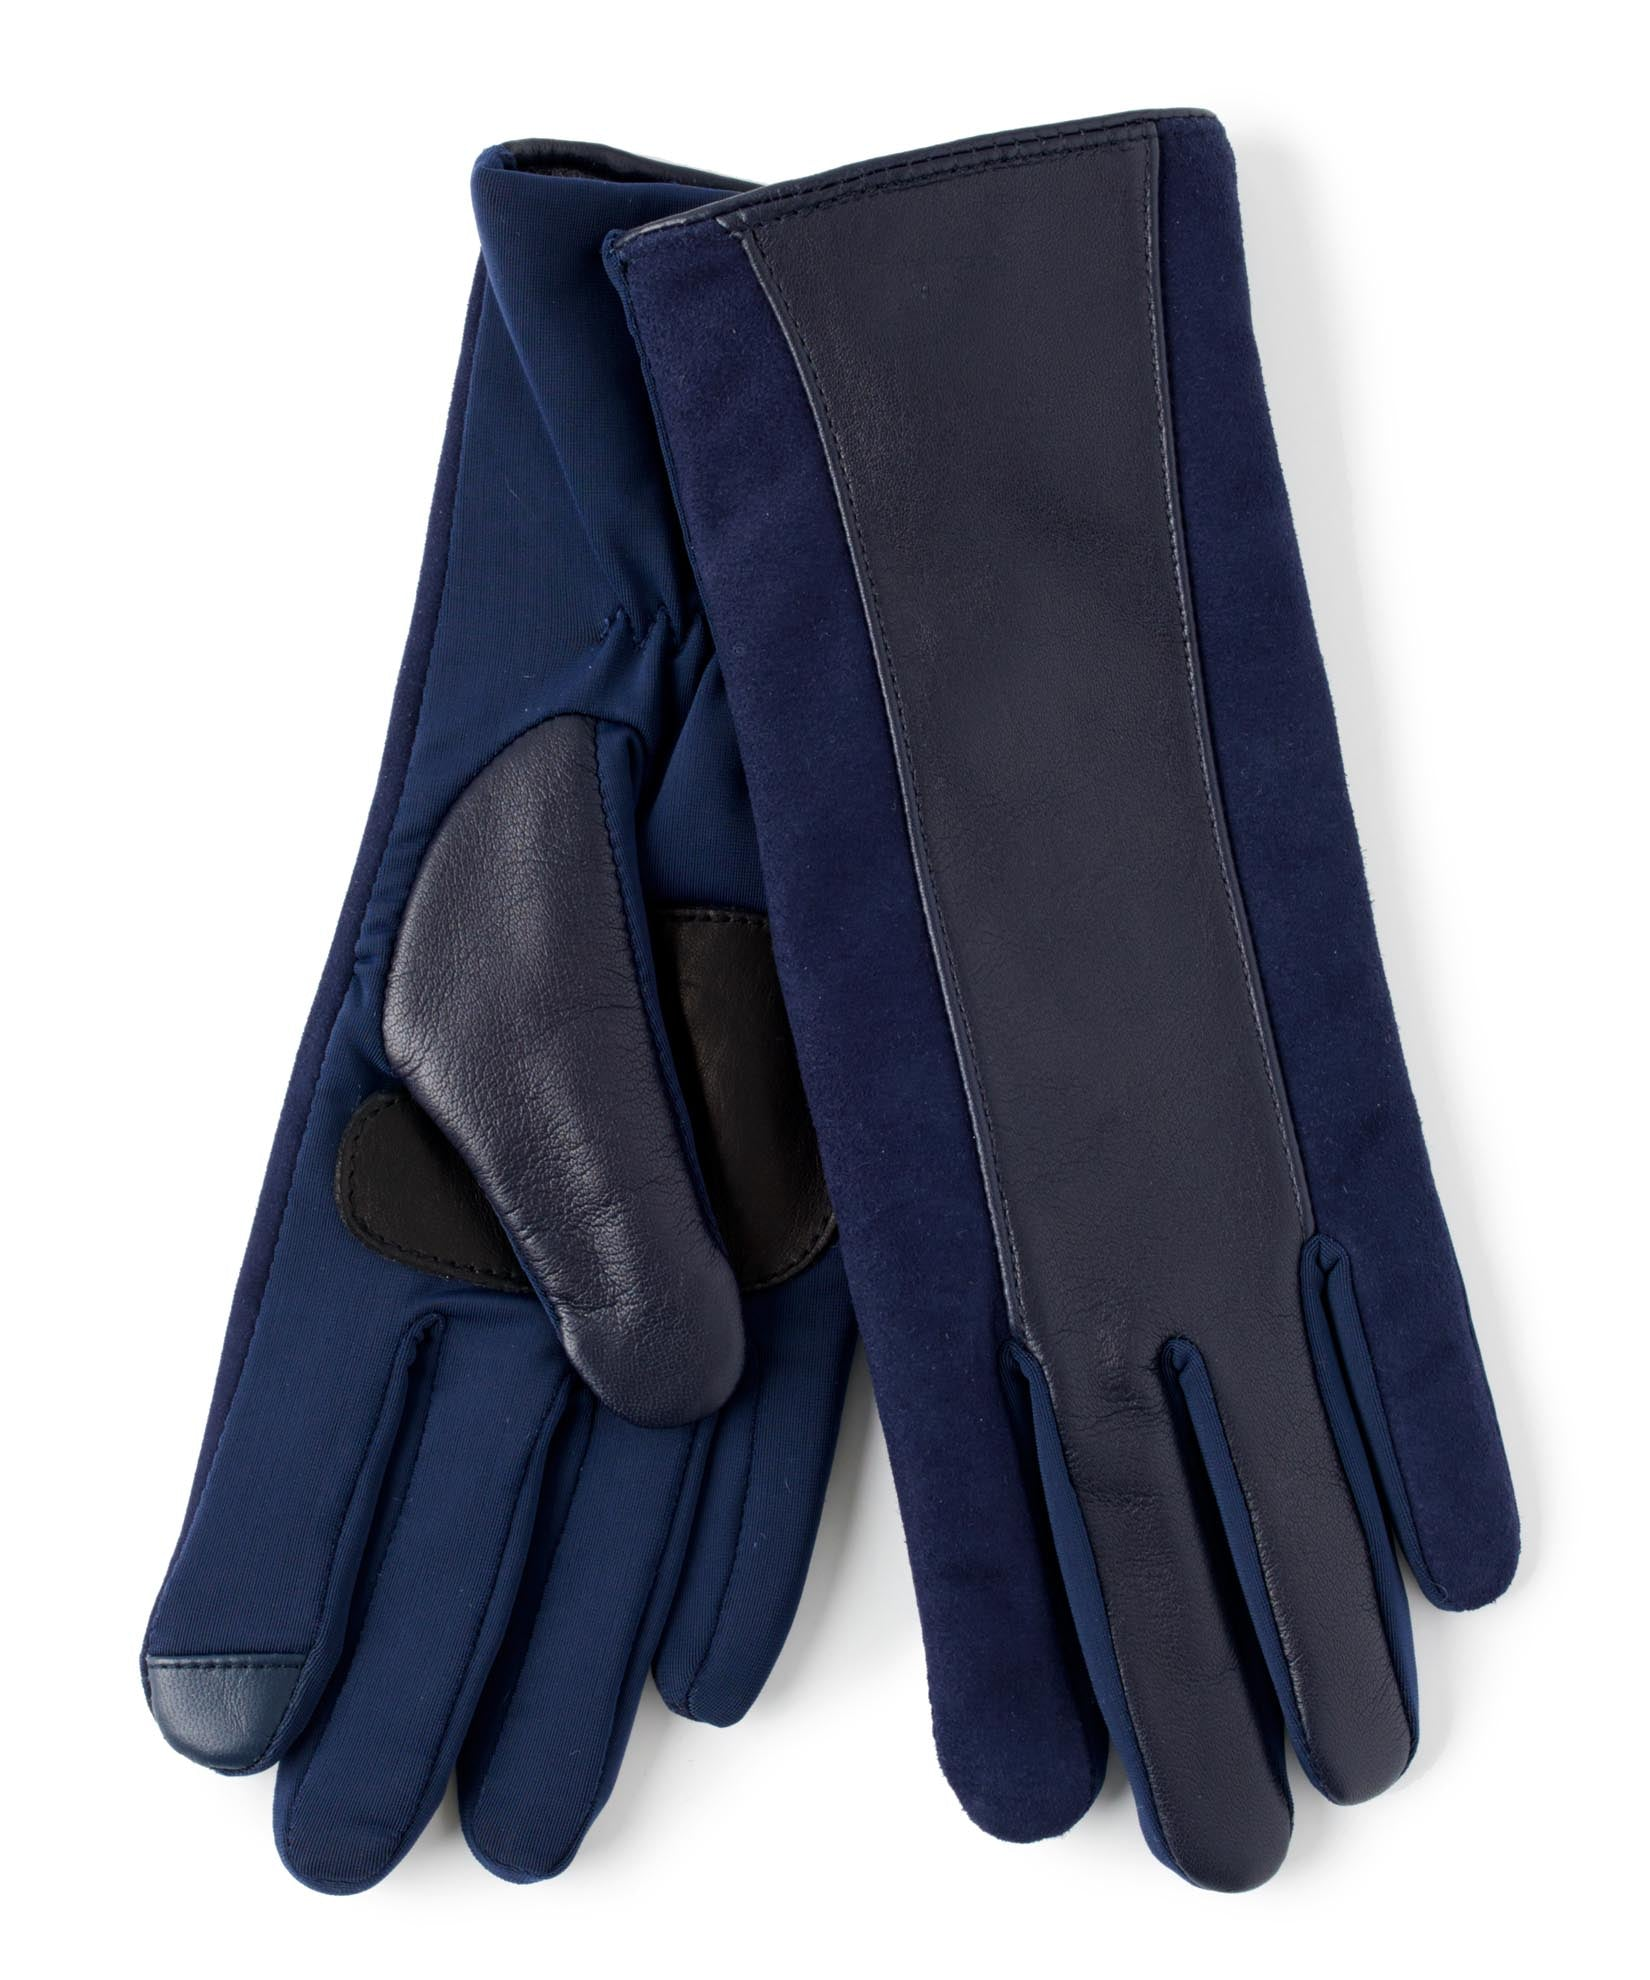 Maritime Navy - Leather Stripe Superfit Glove